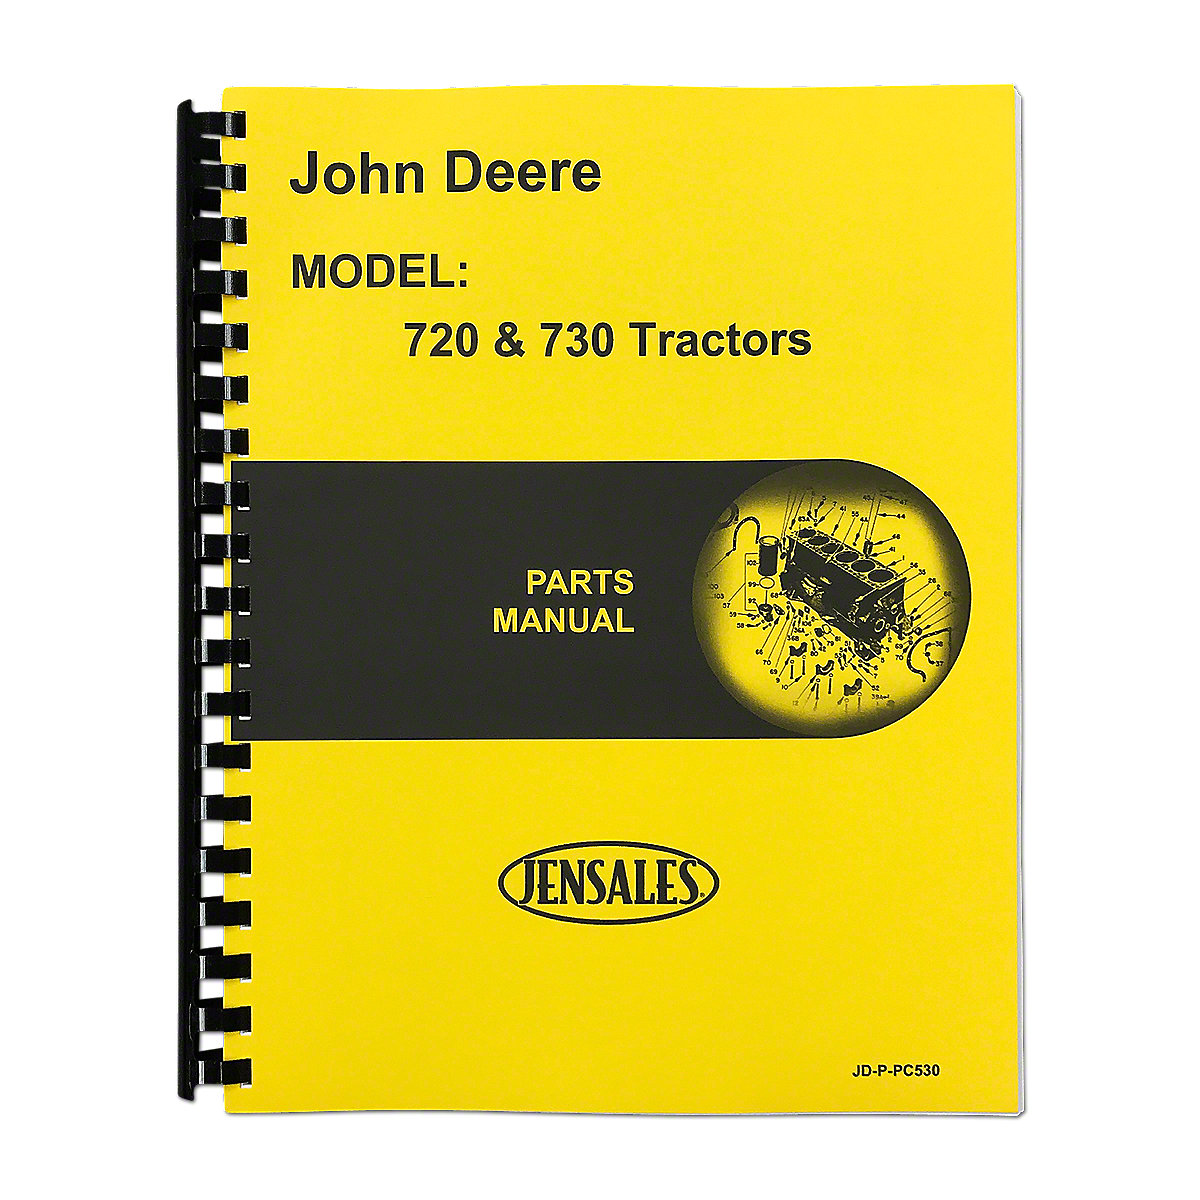 Wiring Diagram For 720 John Deere Tractor Schematics Diagrams 24 Volt Free Engine Image Jeep Wrangler Ford Ranger